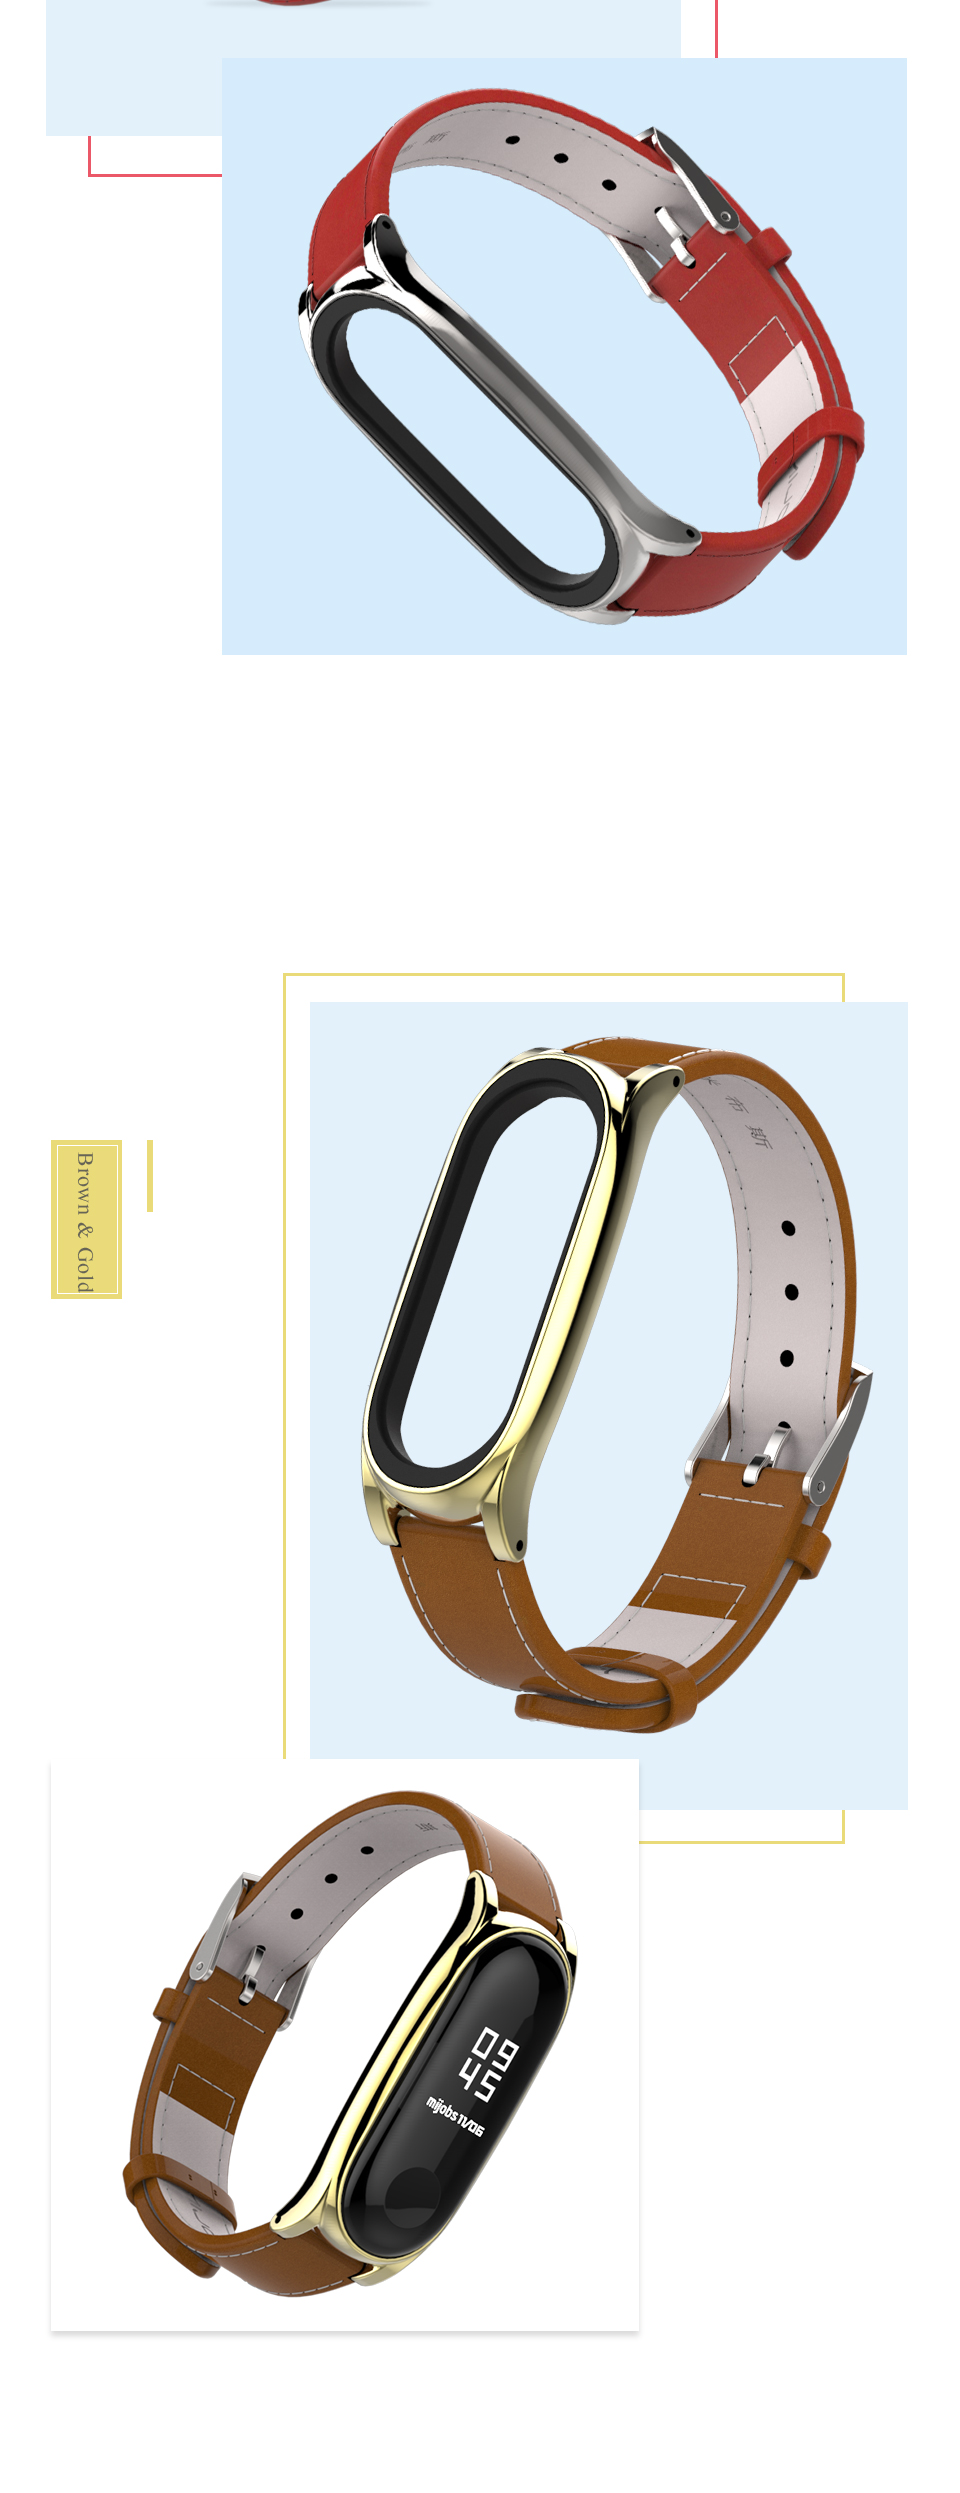 Mijobs New arrival genuine leather watch band for mi band 3 strap smart watch bands wholesale